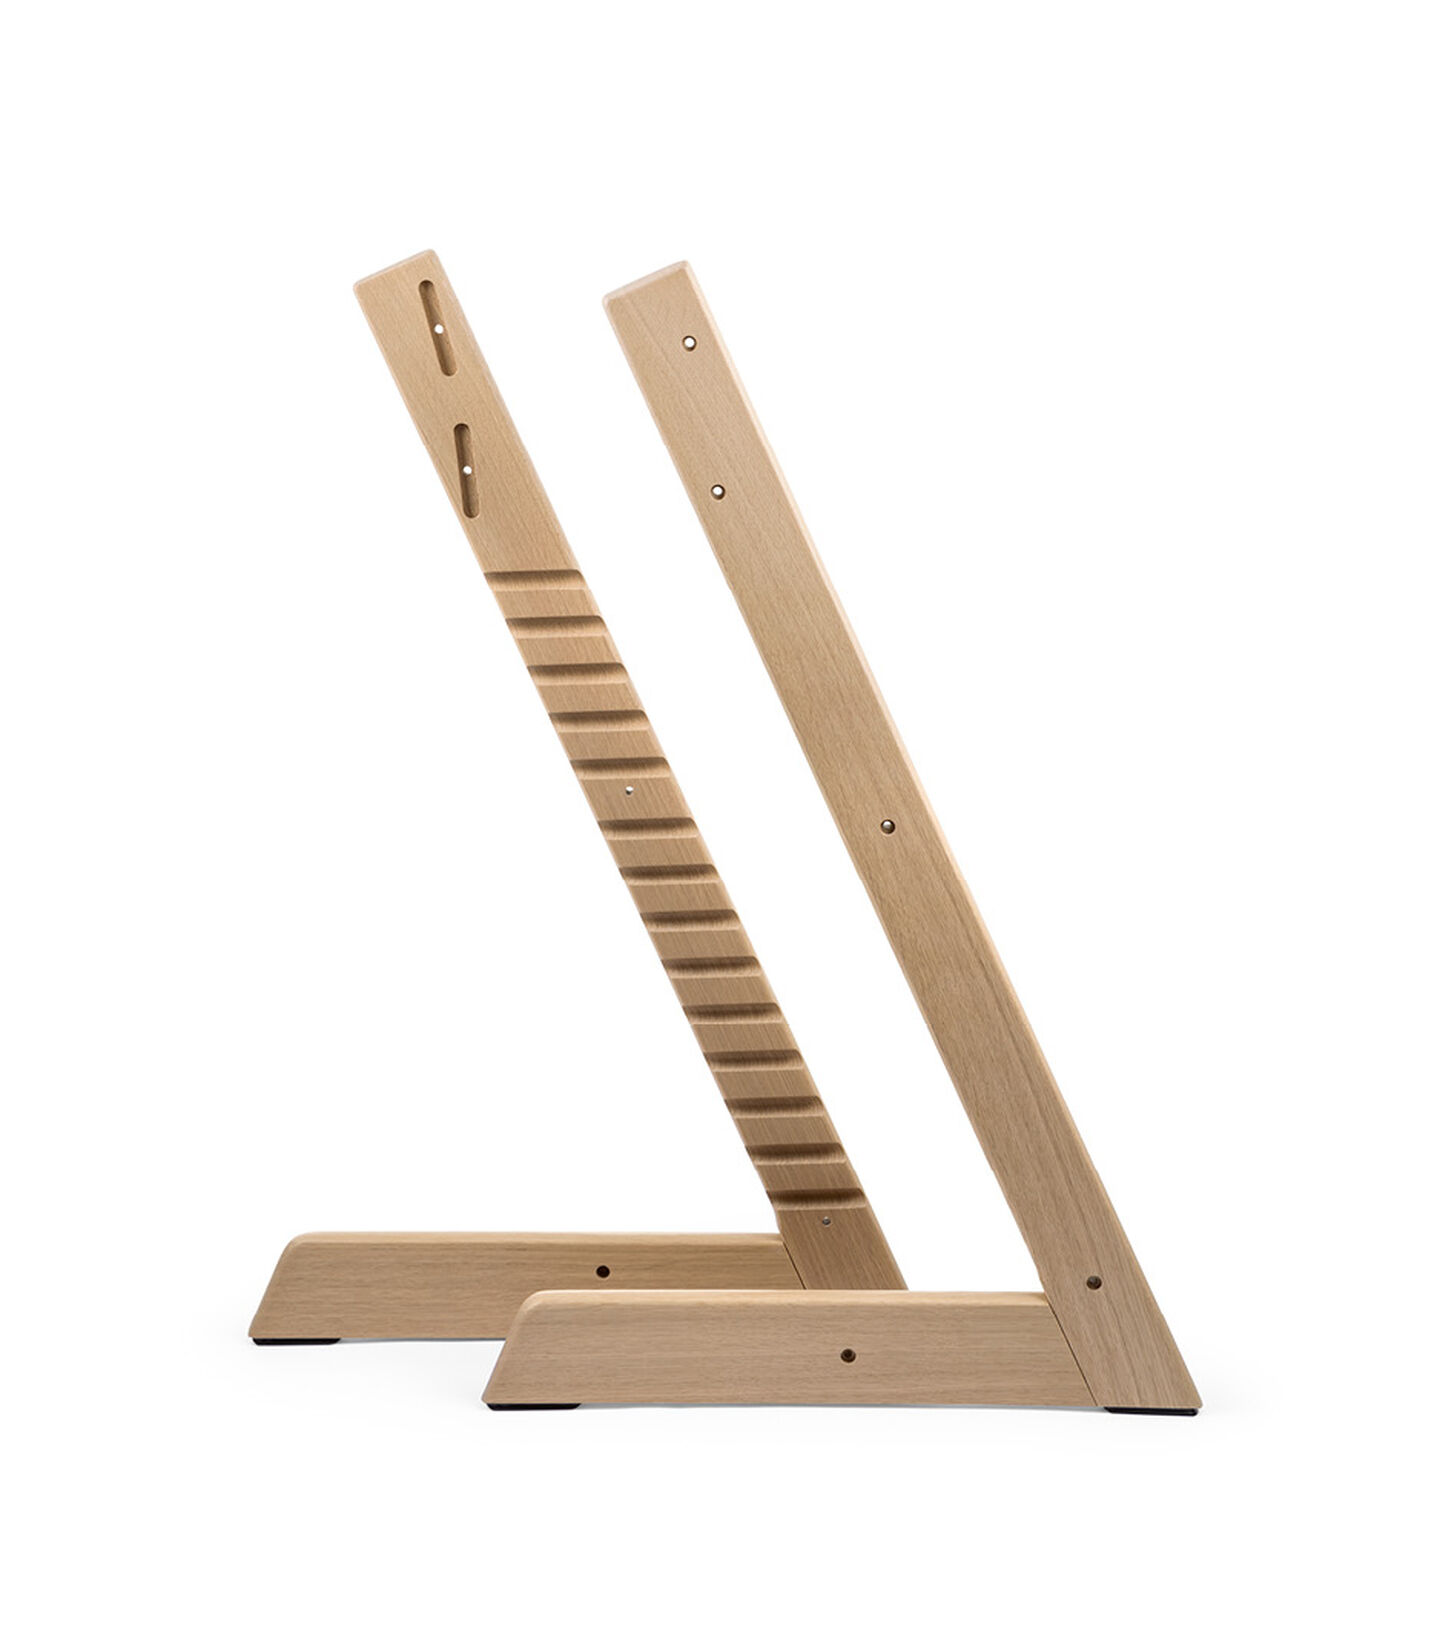 Tripp Trapp® Siderunner set Oak White, Roble Natural, mainview view 2